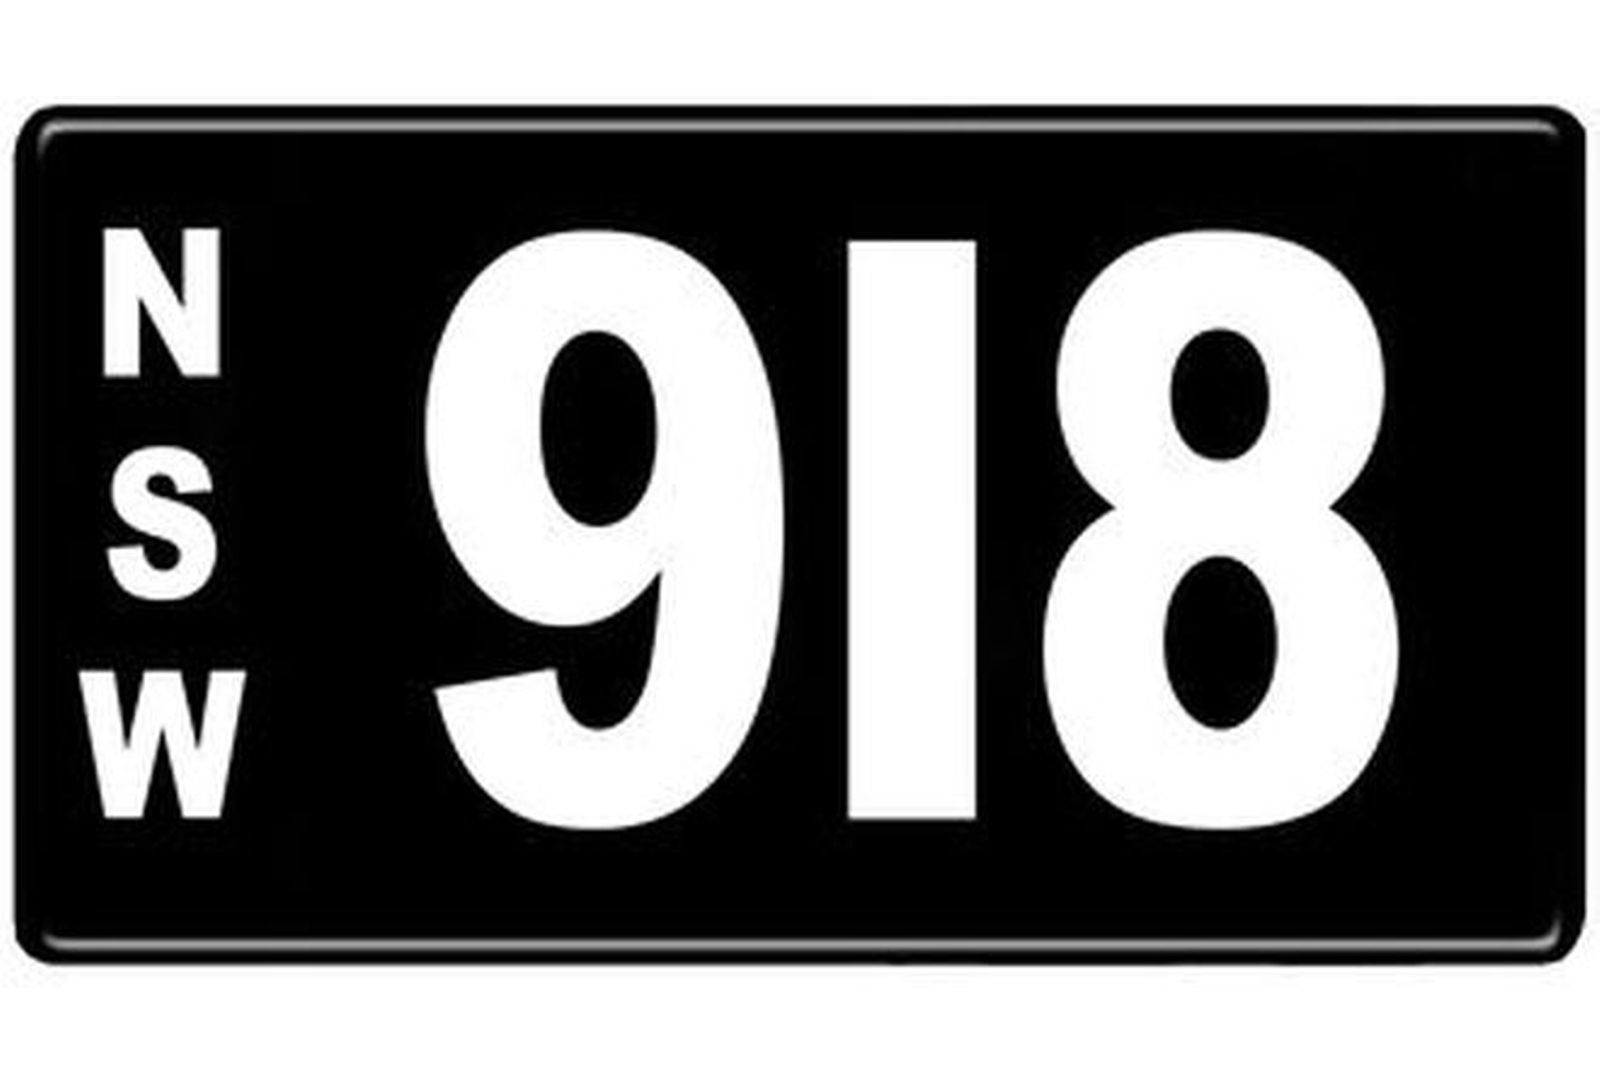 Number Plates - NSW Numerical Number Plates '918'